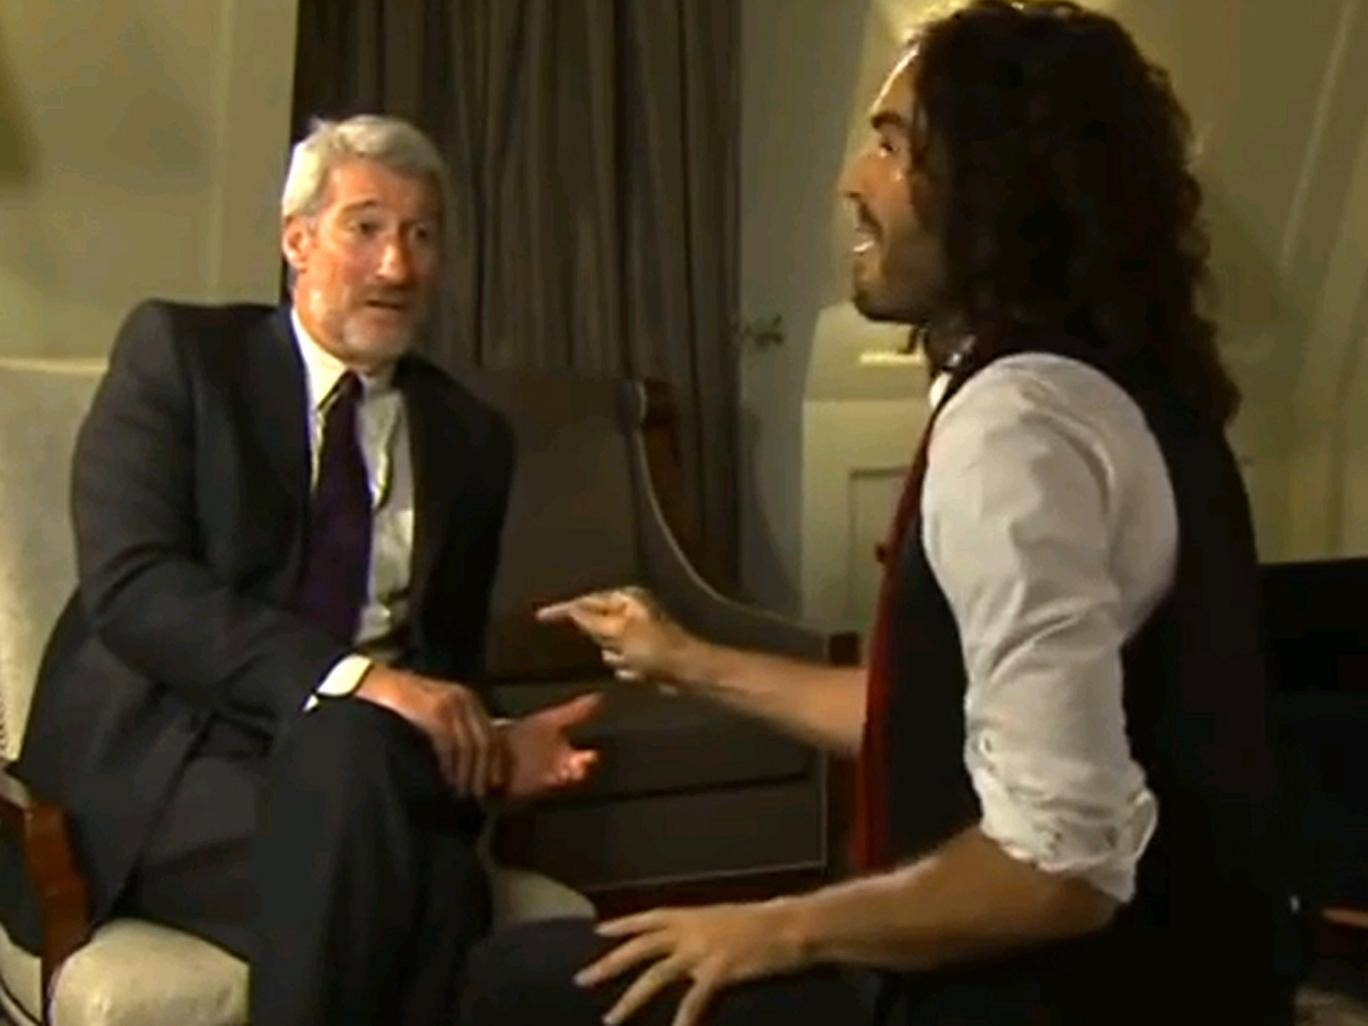 Russell Brand (right) with Jeremy Paxman on 'Newsnight', in which he confessed that he had never voted